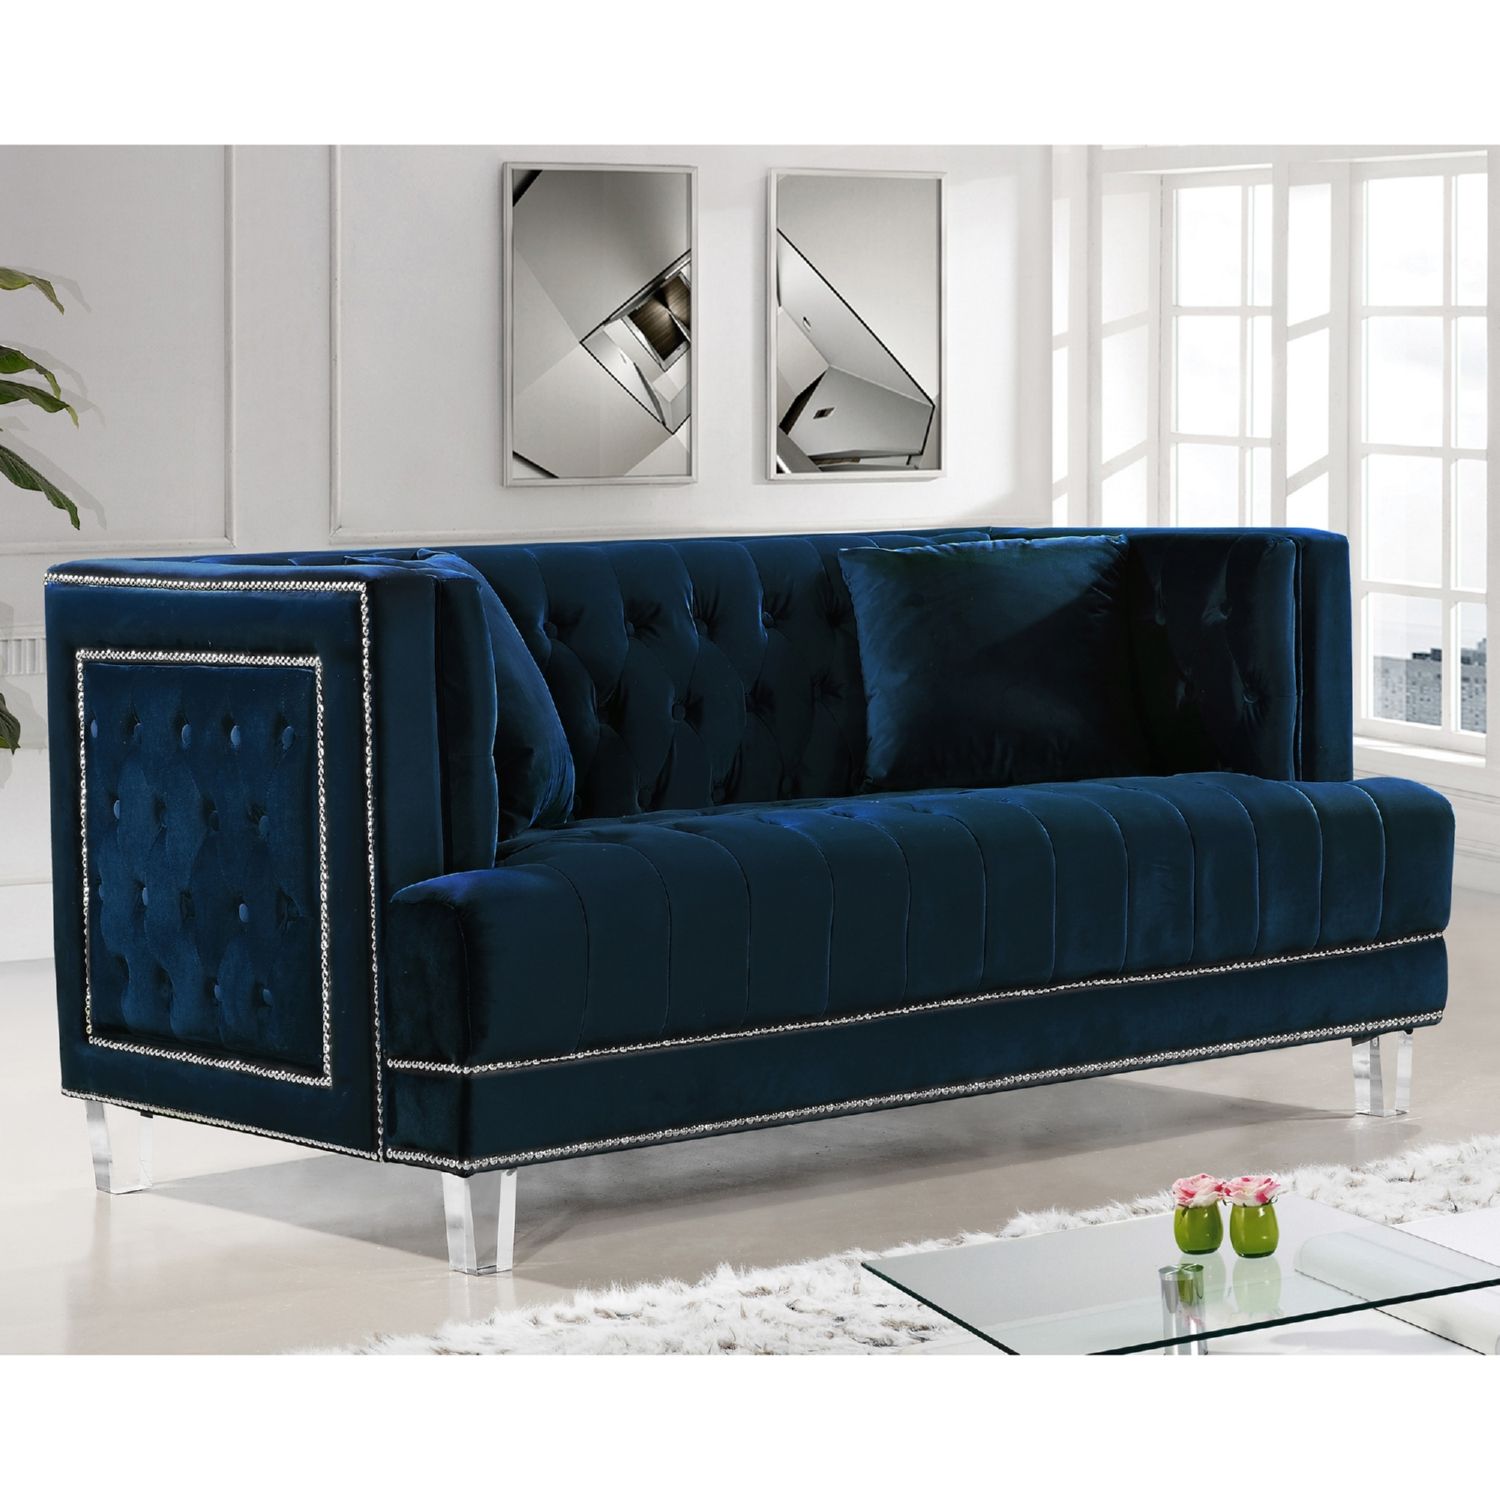 chloe velvet tufted sofa living room furniture collection sectional sofas with drink holders 3pc navy set new hot sectionals